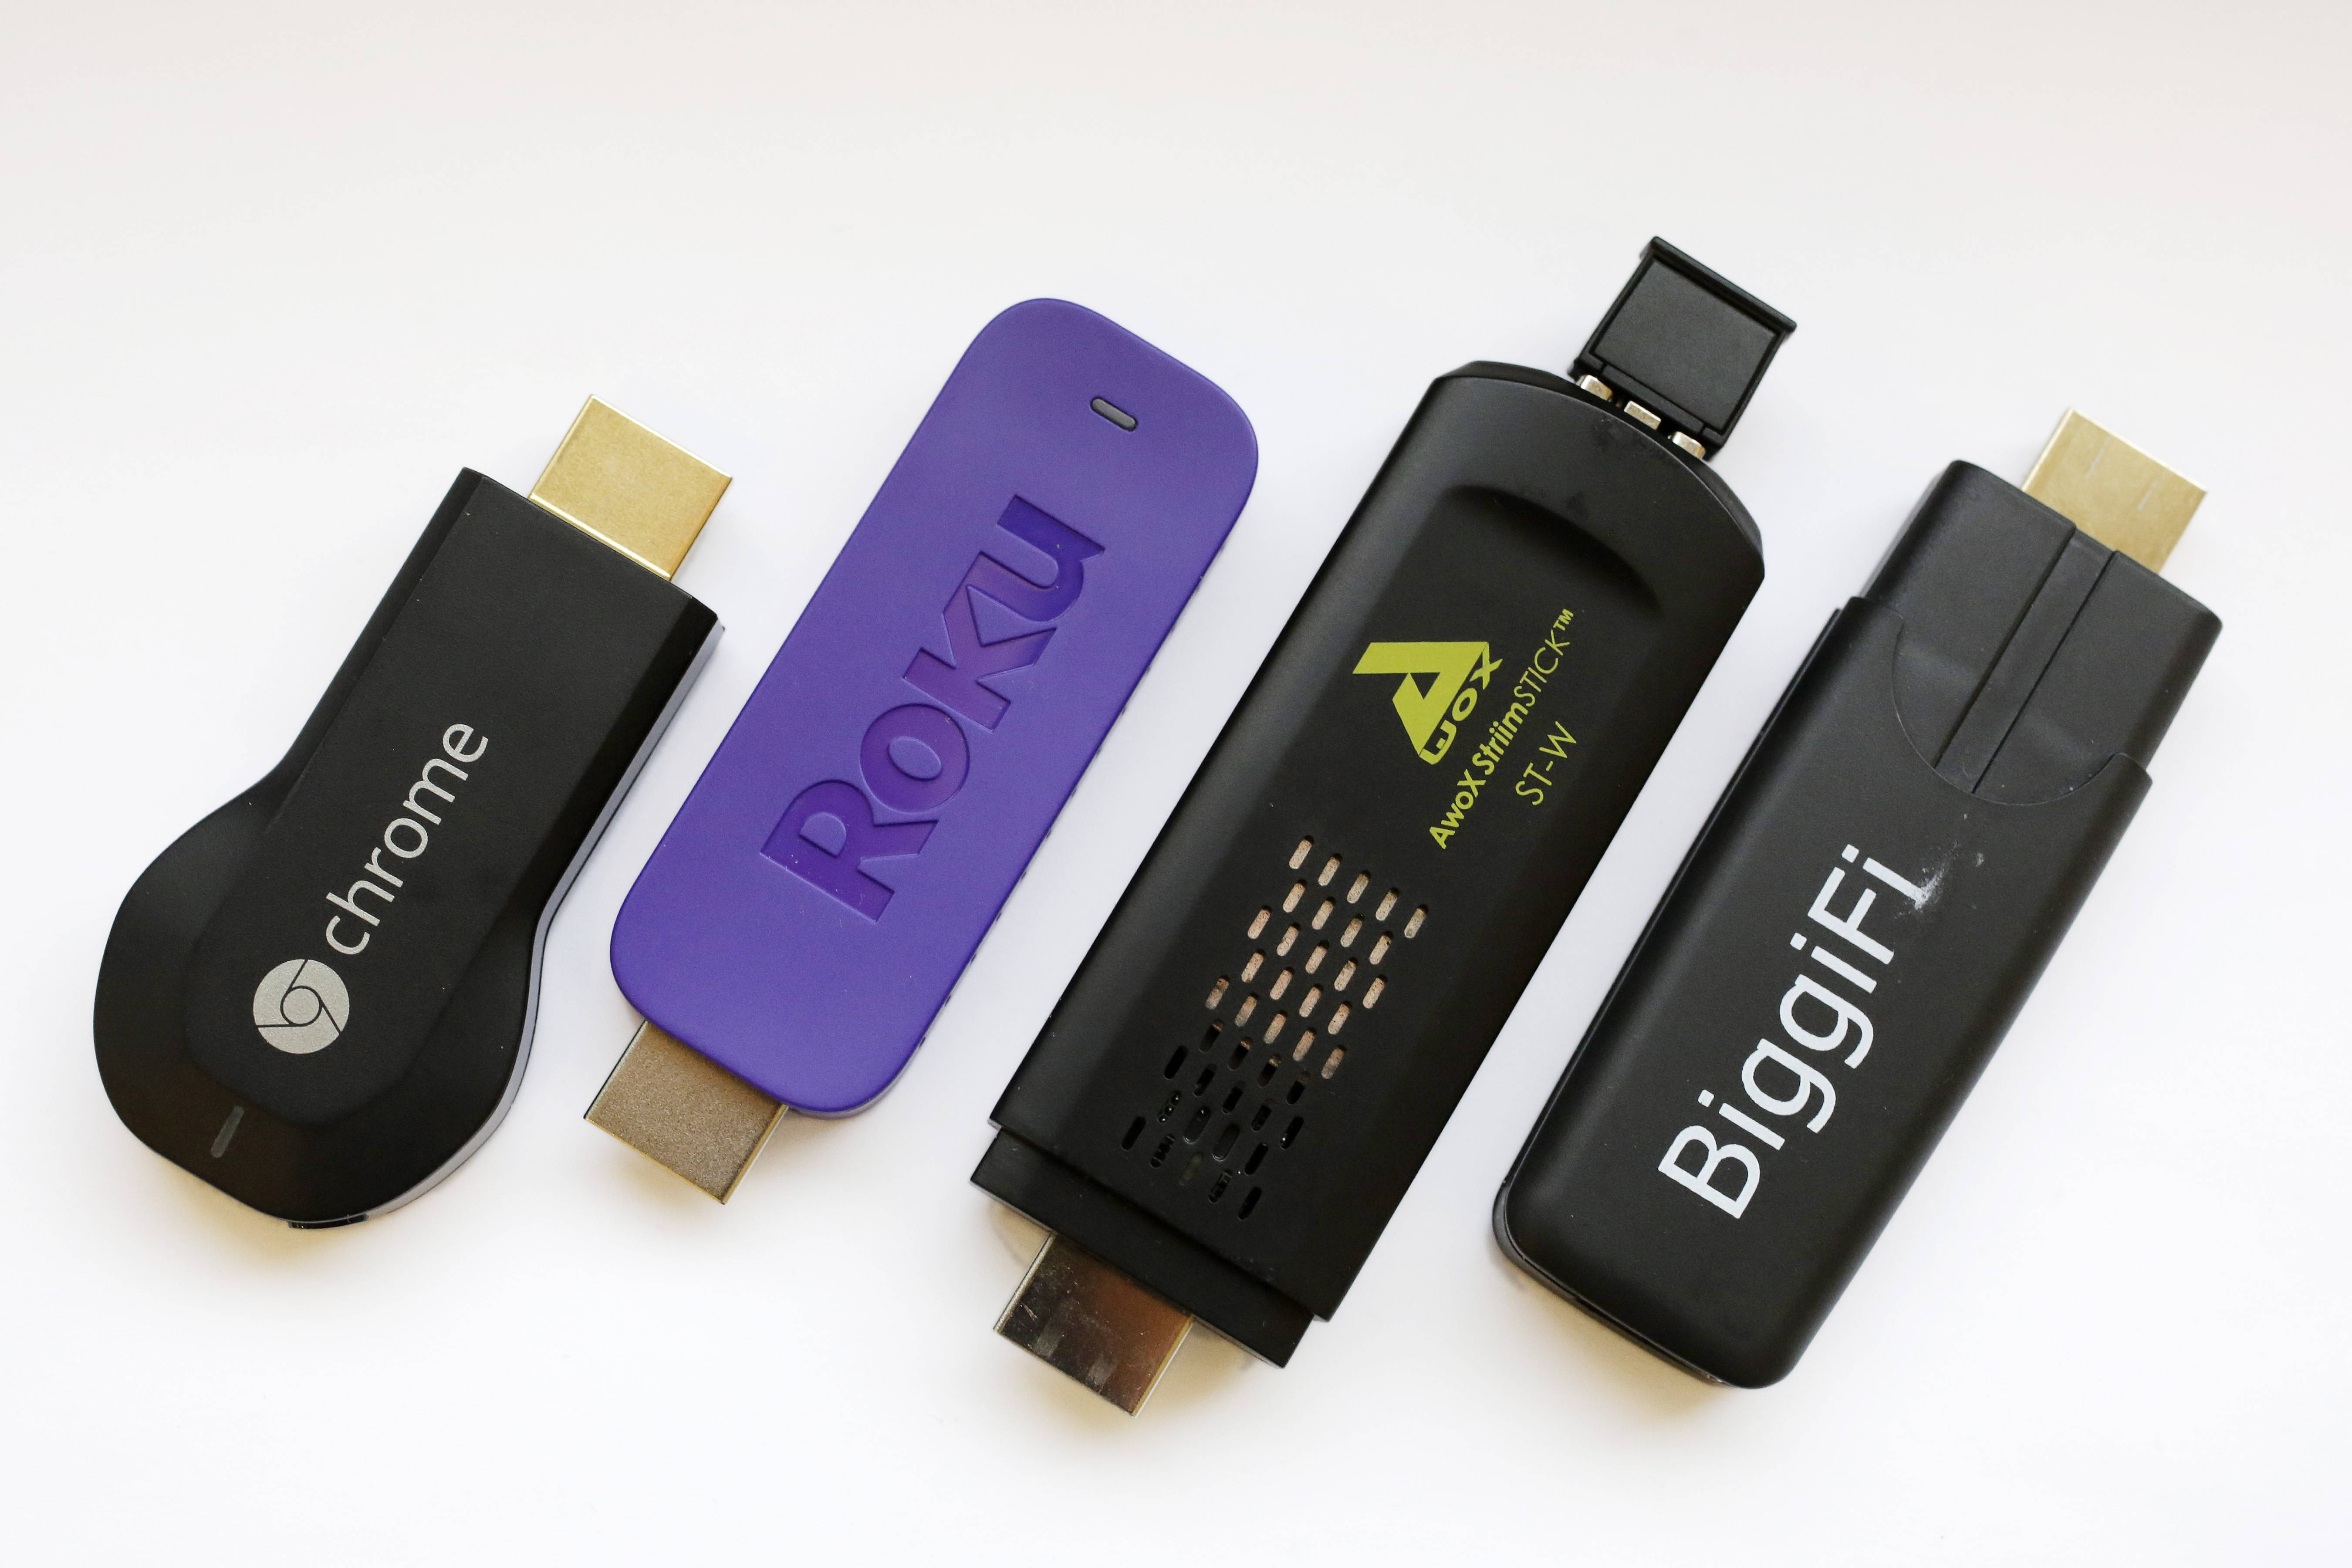 Google Chromecast, from let, Roku Streaming Stick, AwoX StriimStick, and BiggiFi.